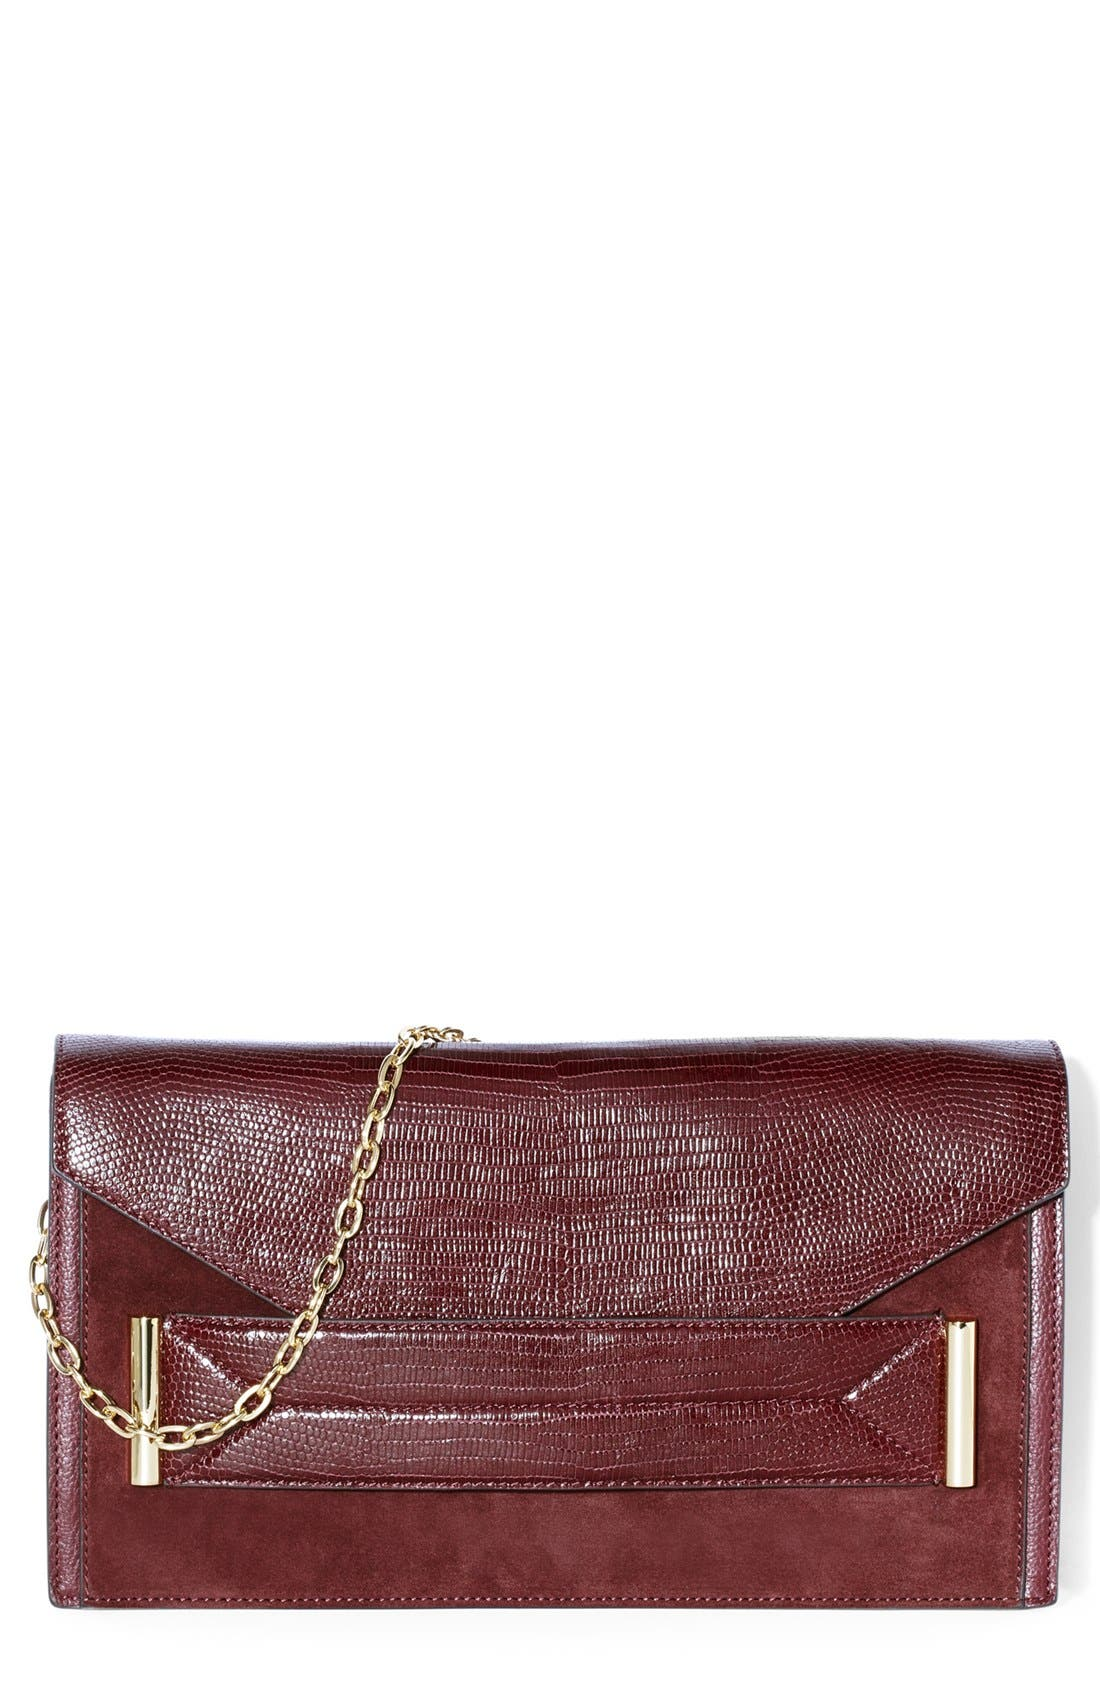 Alternate Image 1 Selected - Vince Camuto 'Billy' Leather Clutch